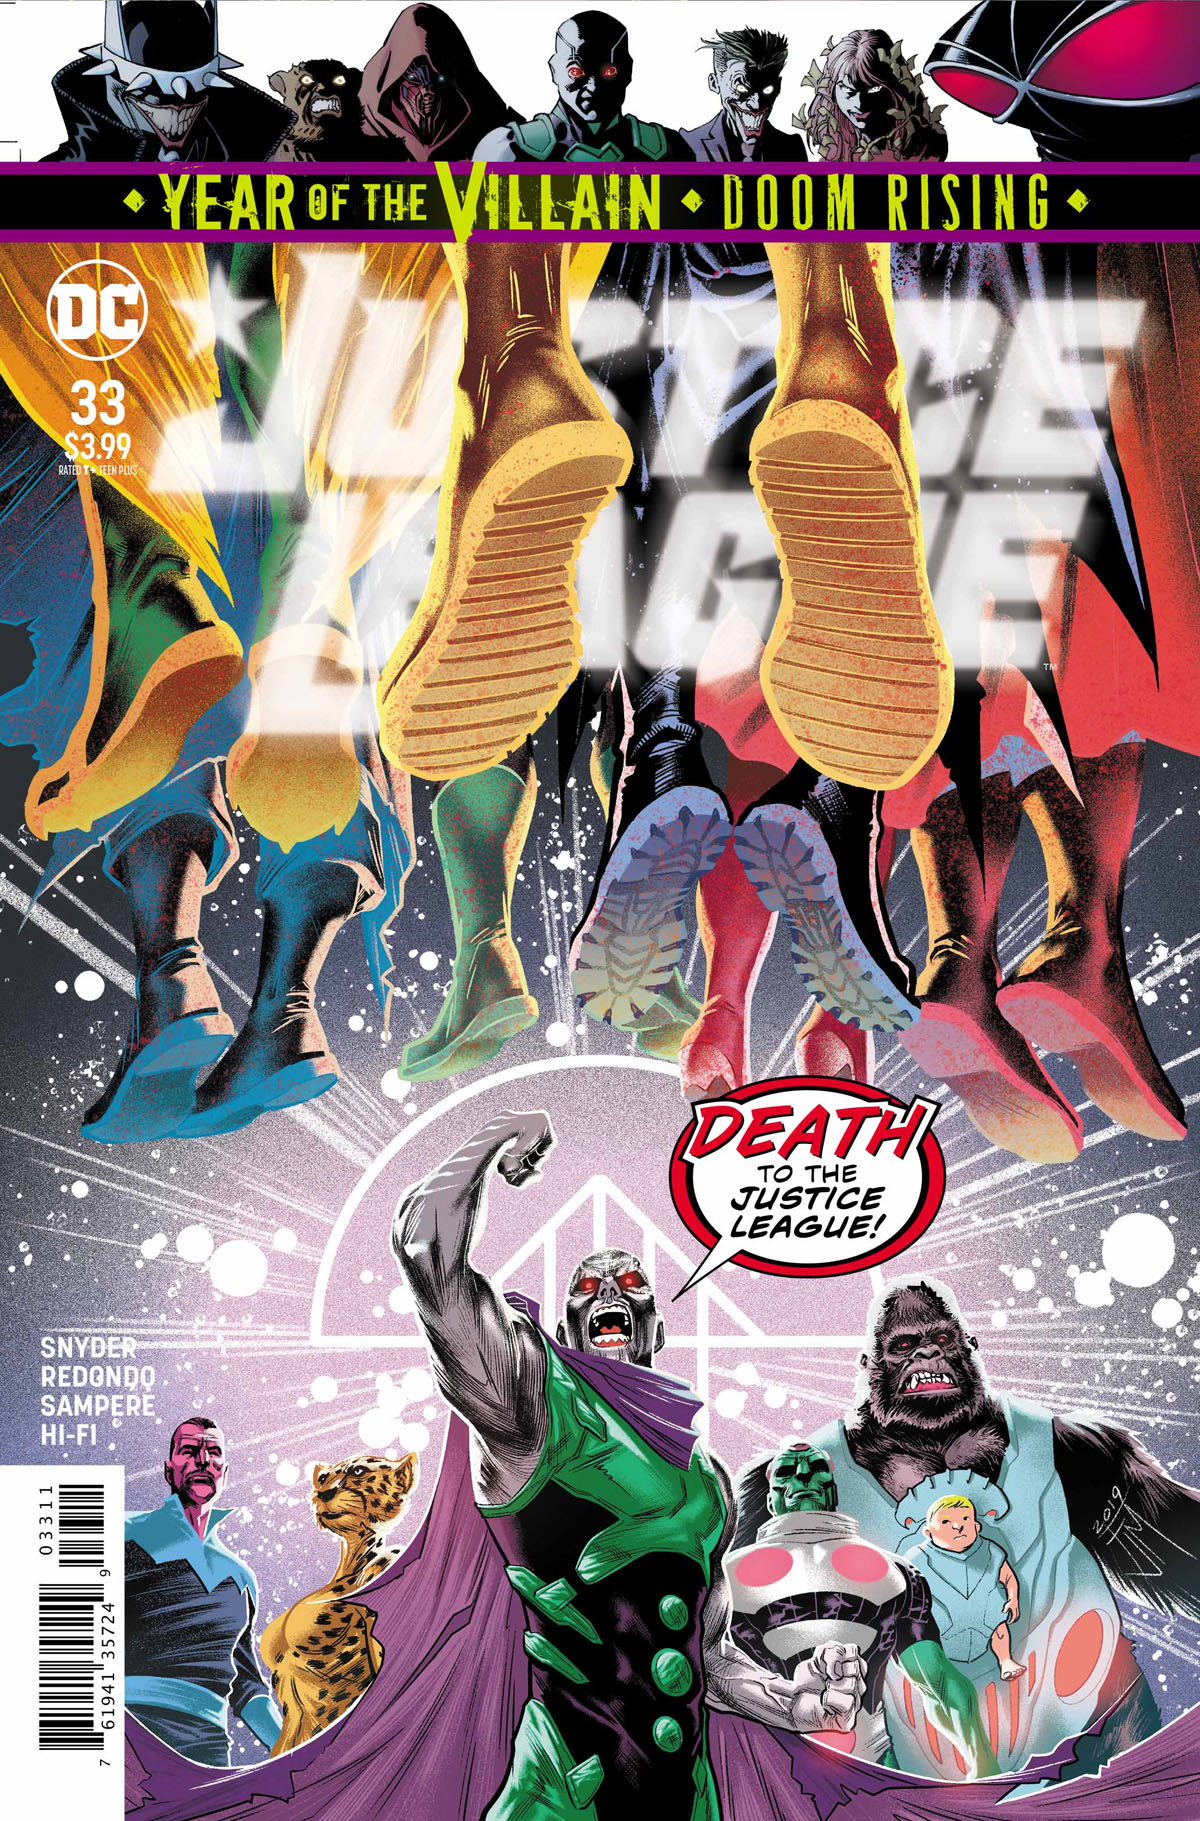 Justice League #33 cover